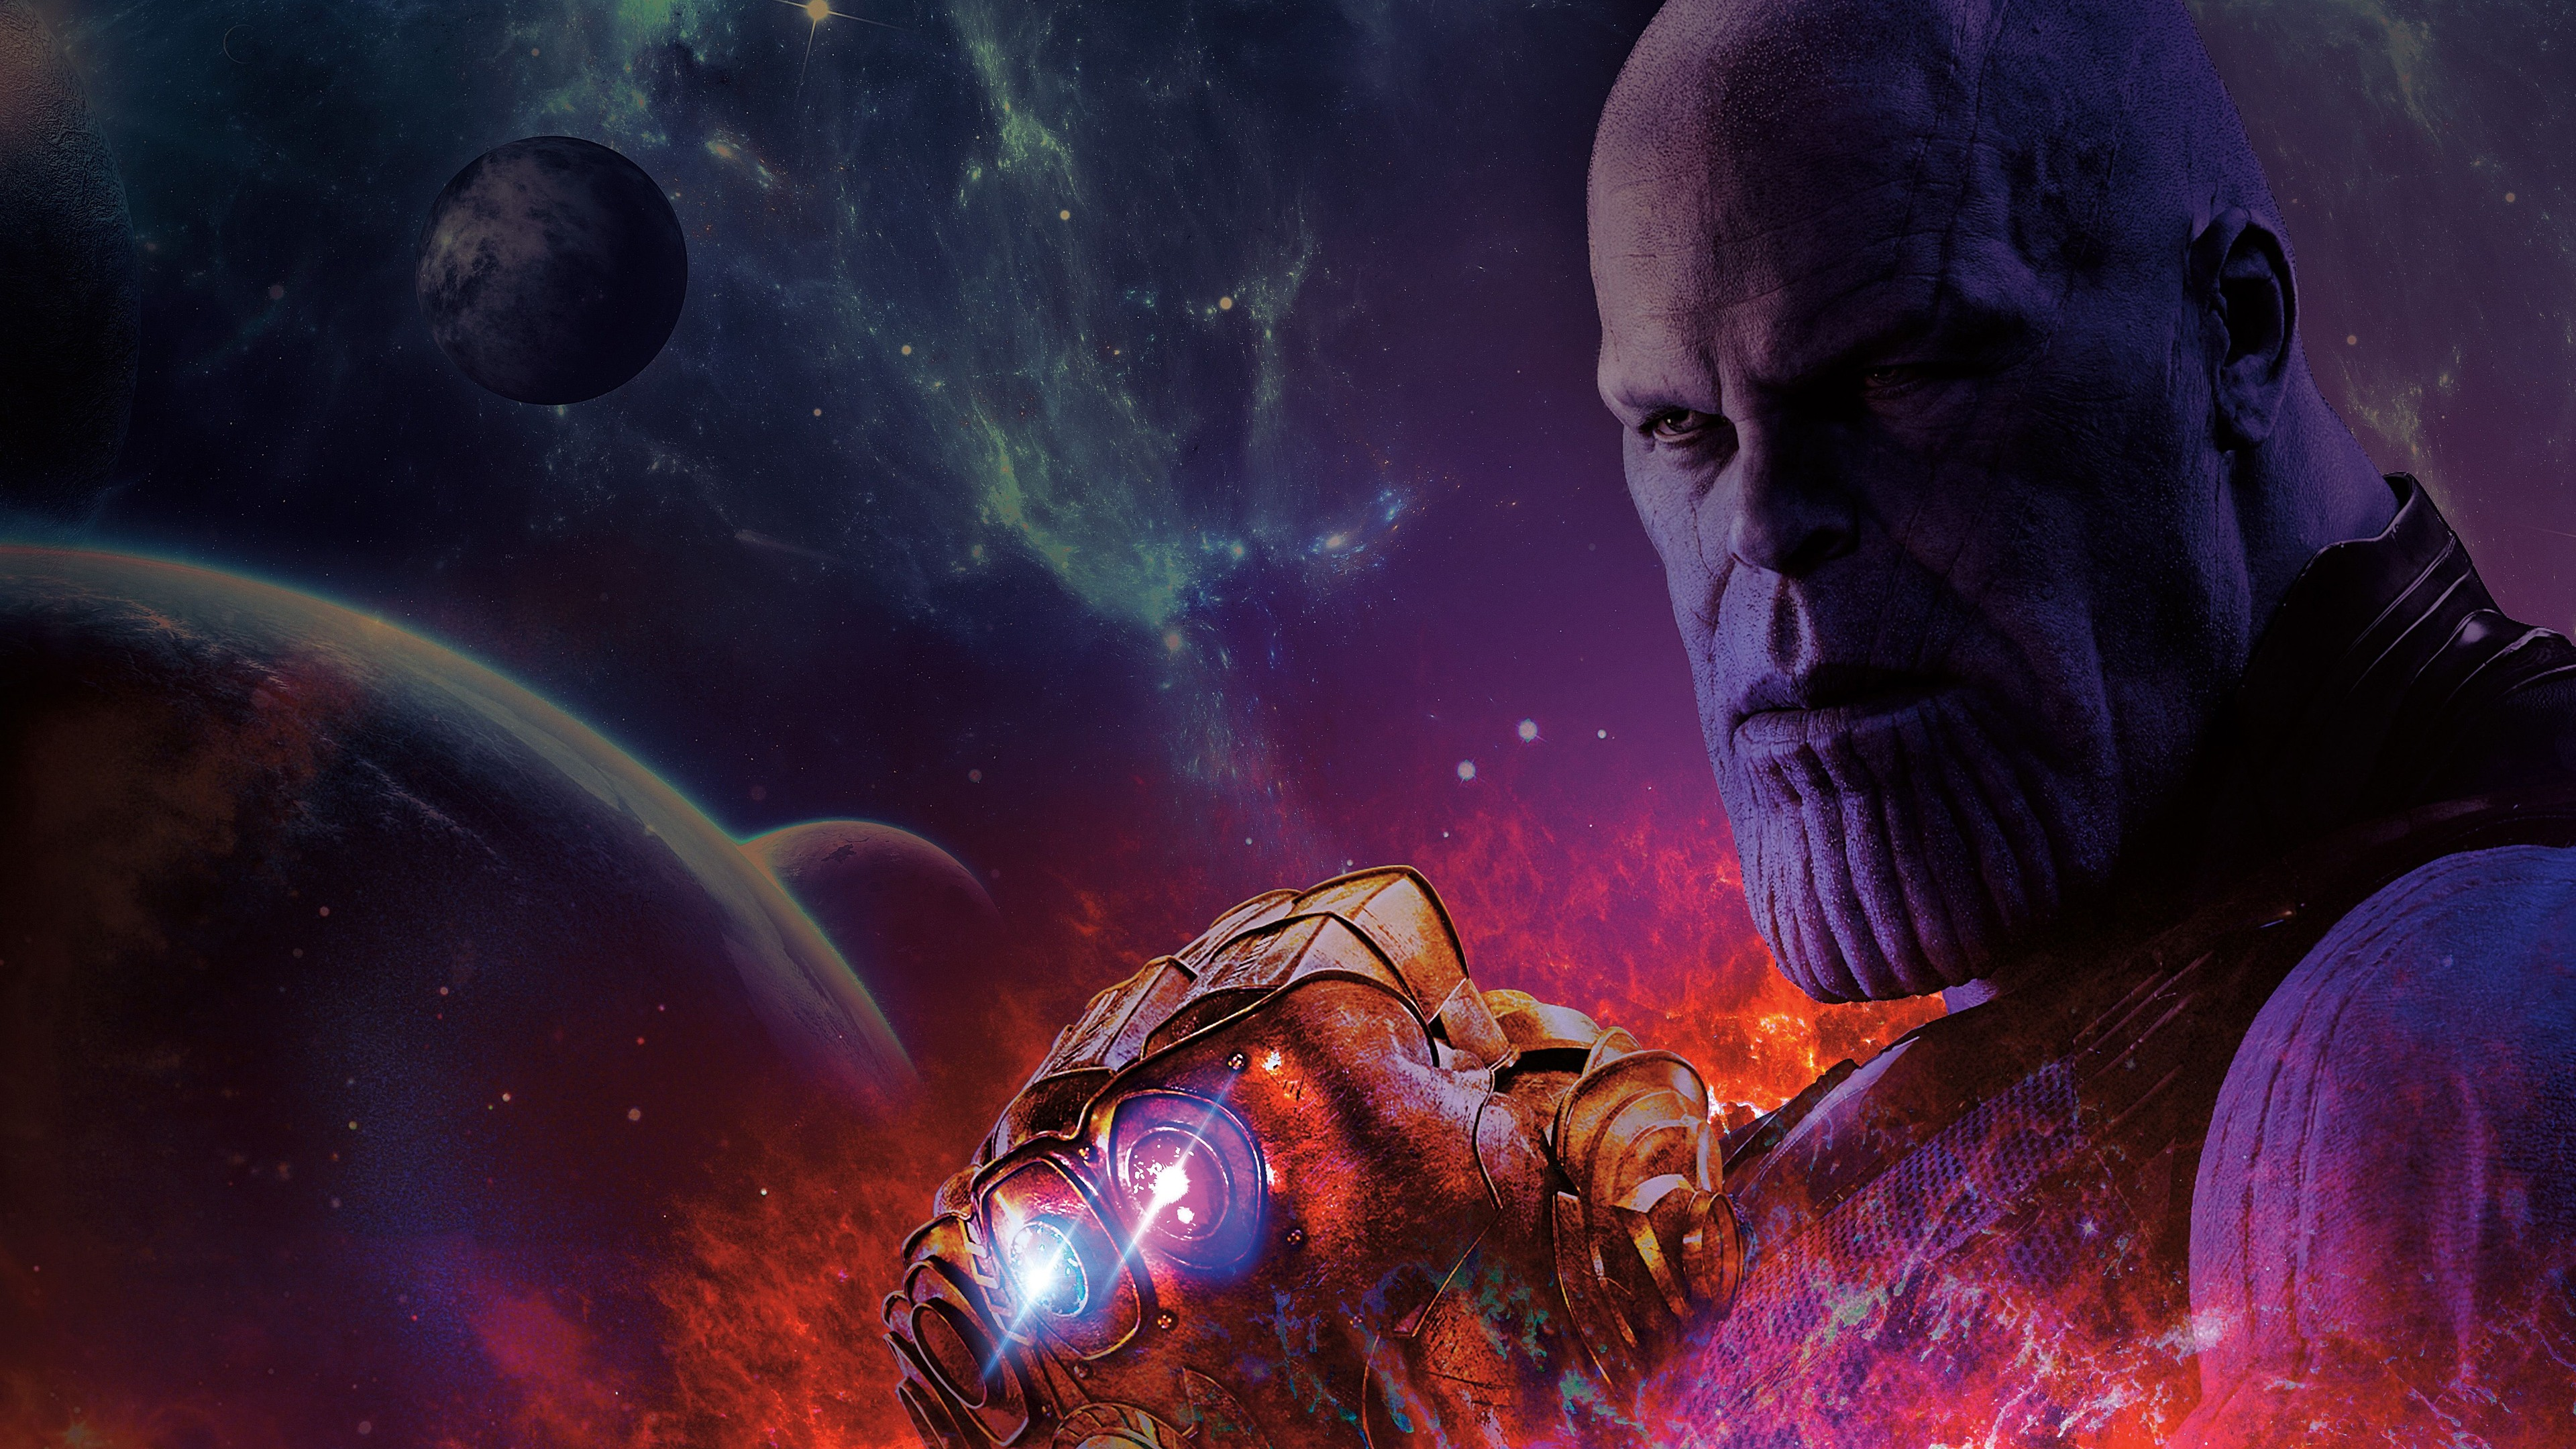 3840x2160 avengers infinity war thanos with gauntlet infinity stones 4k hd 4k wallpapers images - Infinity war hd download ...